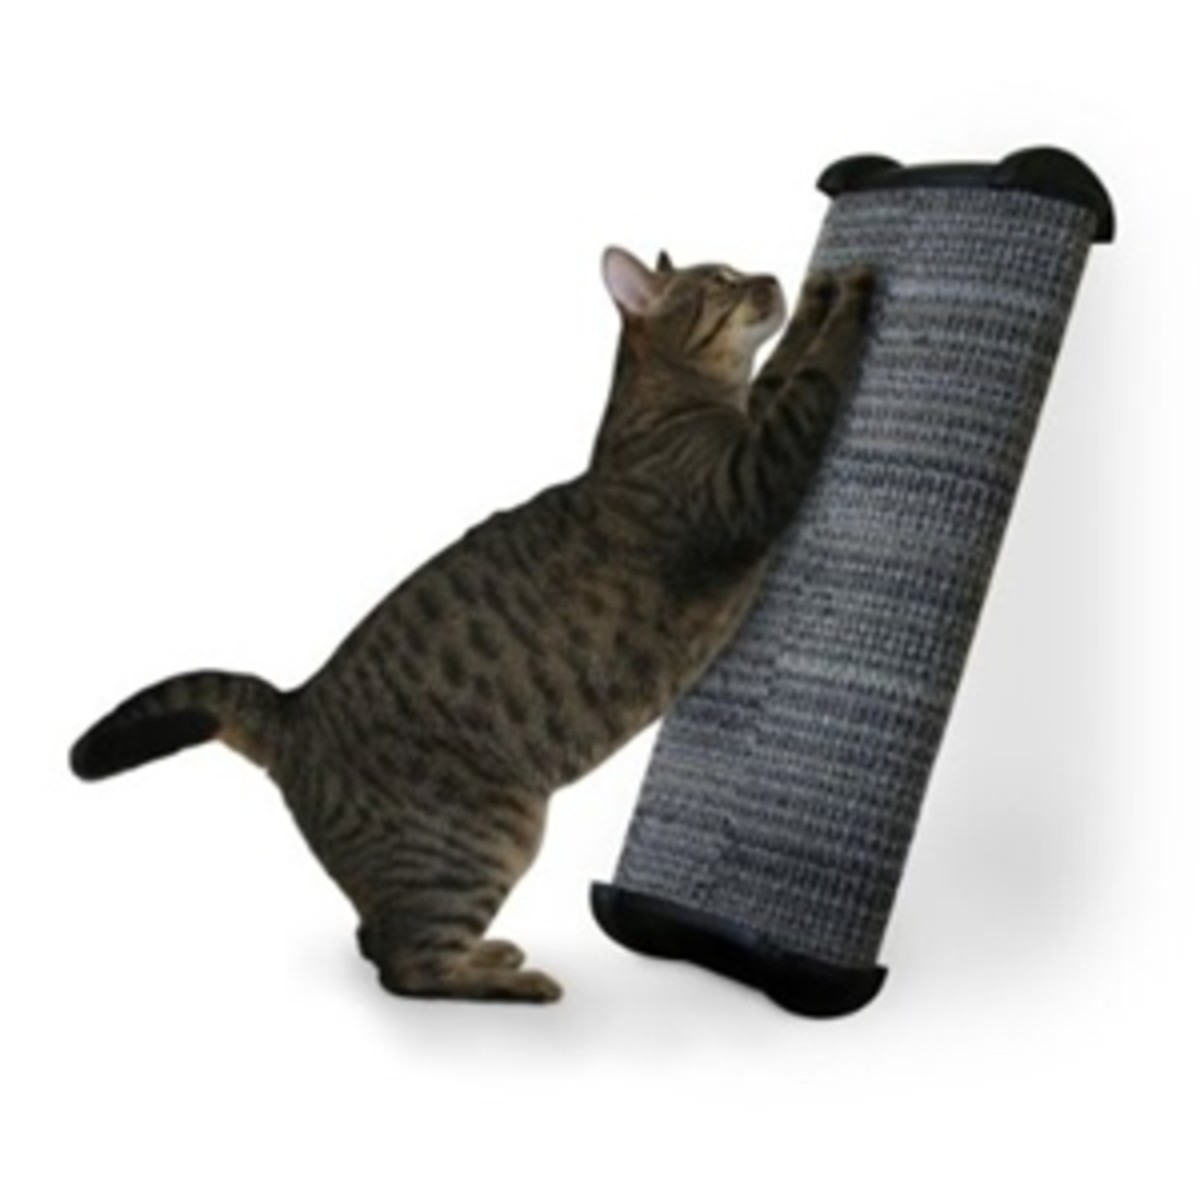 Use the Feliway Diffuser in conjunction with the Feliway Spray and a Cat Scratching Post to stop your cat scratching furniture and furnishings